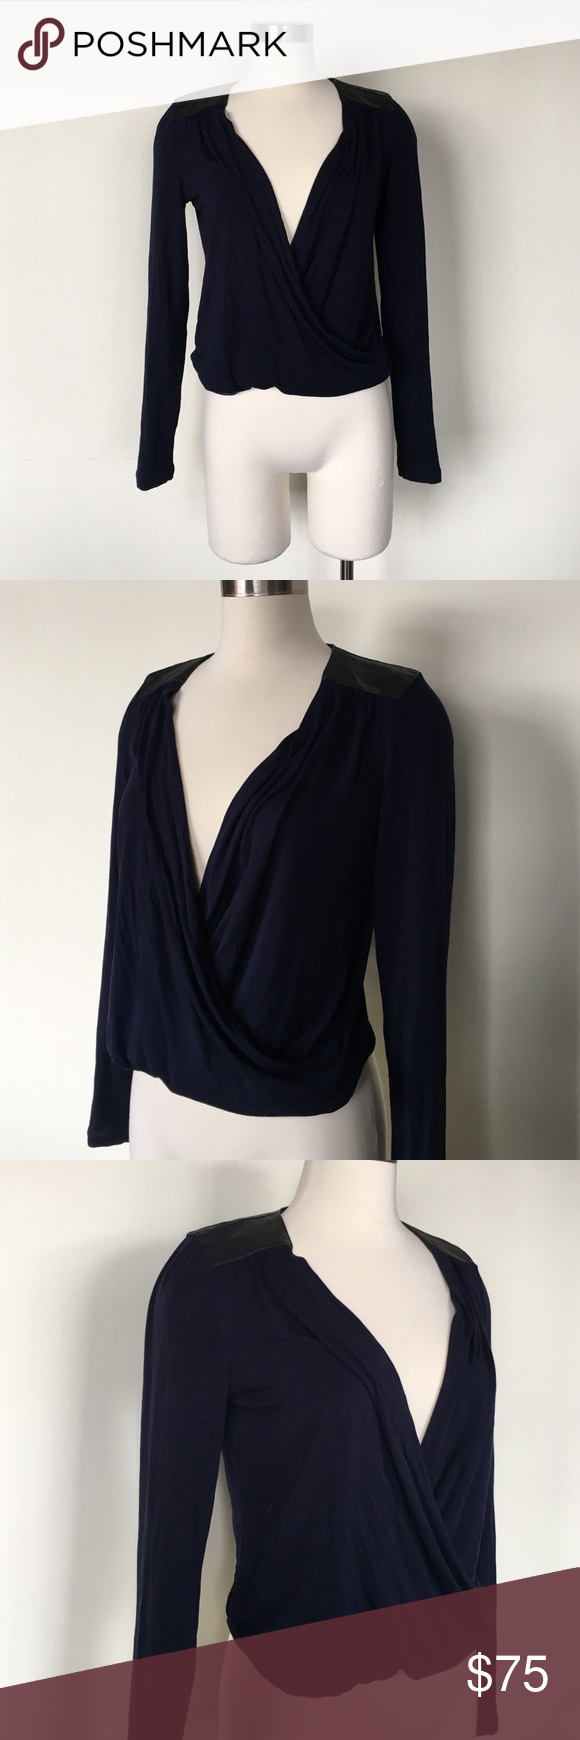 Nordstrom Surplice Wrap Leather Detail Blouse Top Navy with black leather accents. EUC no pilling. Size XS. Gathered bottom for better fit Nordstrom Tops